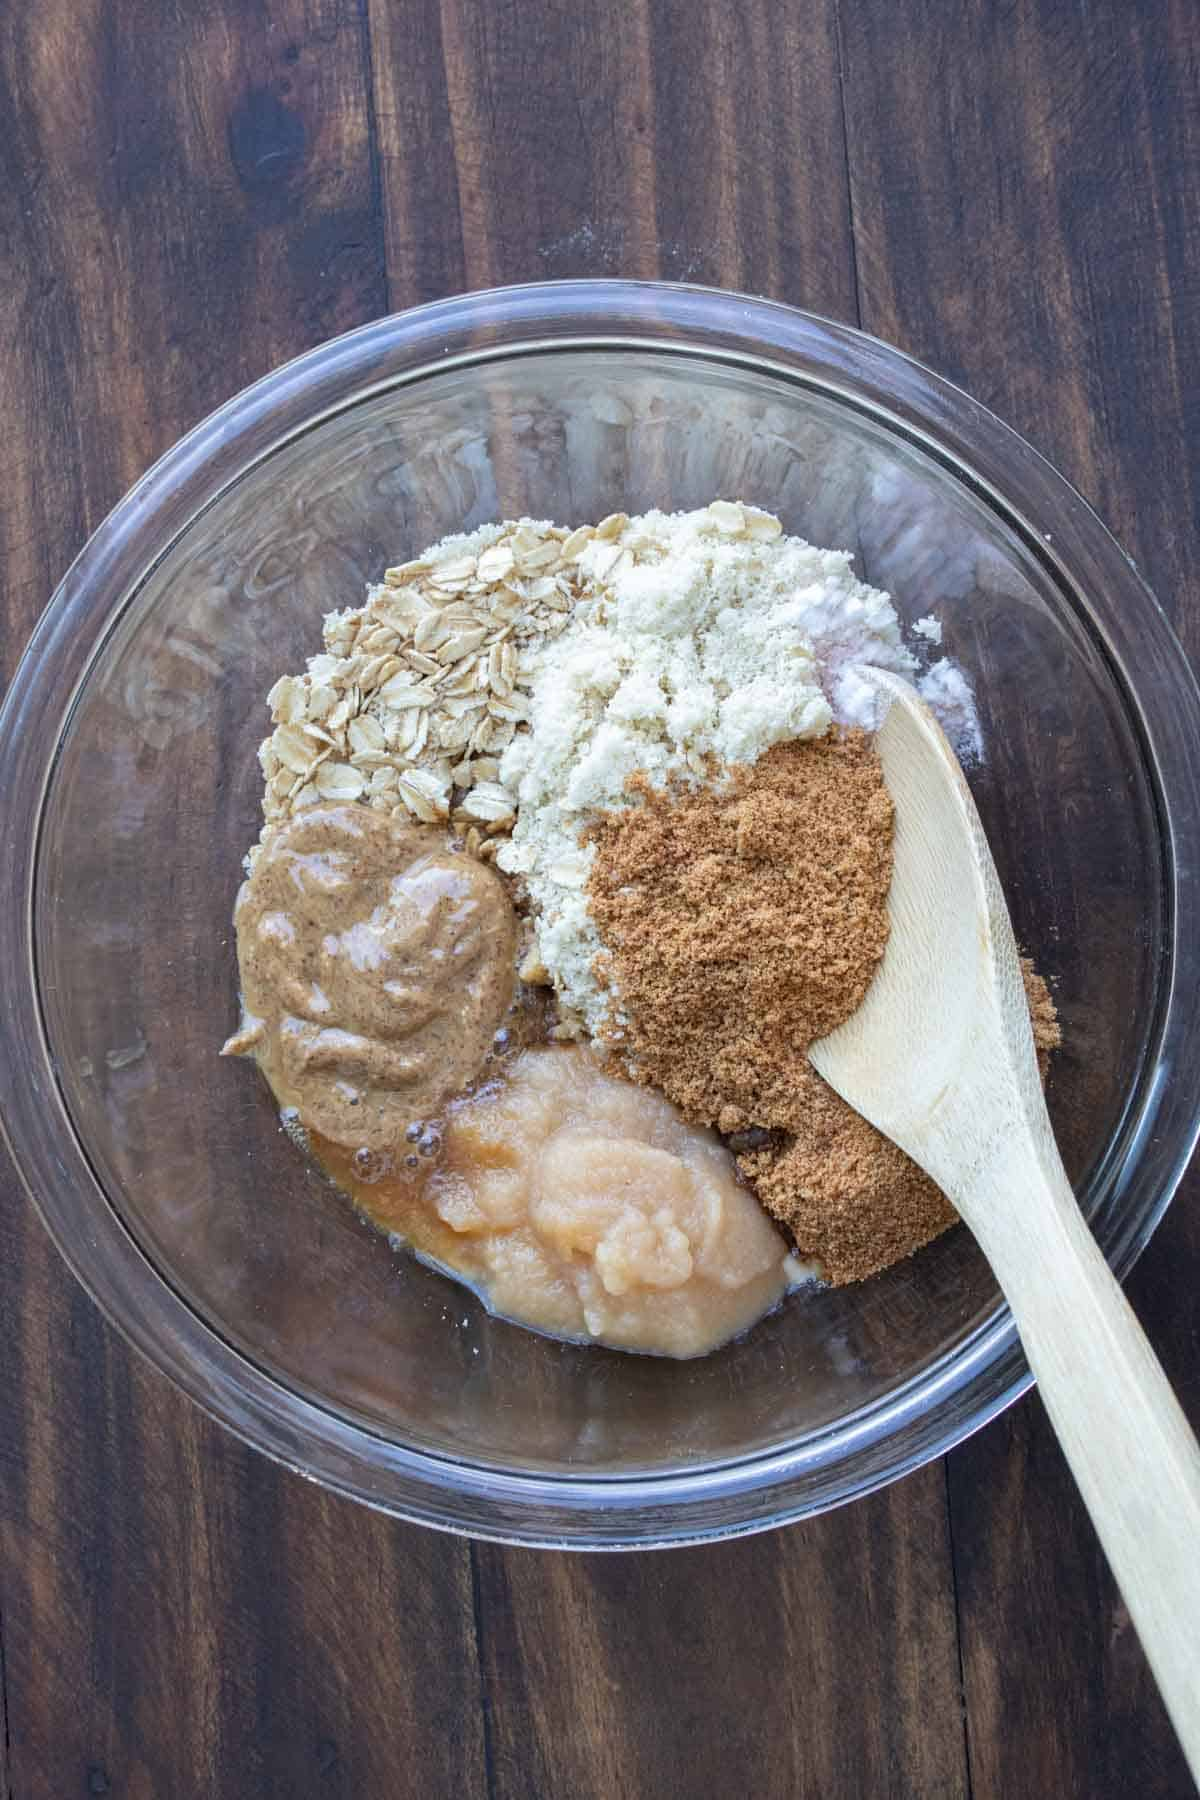 Wooden spoon mixing ingredients for oatmeal cookies in a glass bowl